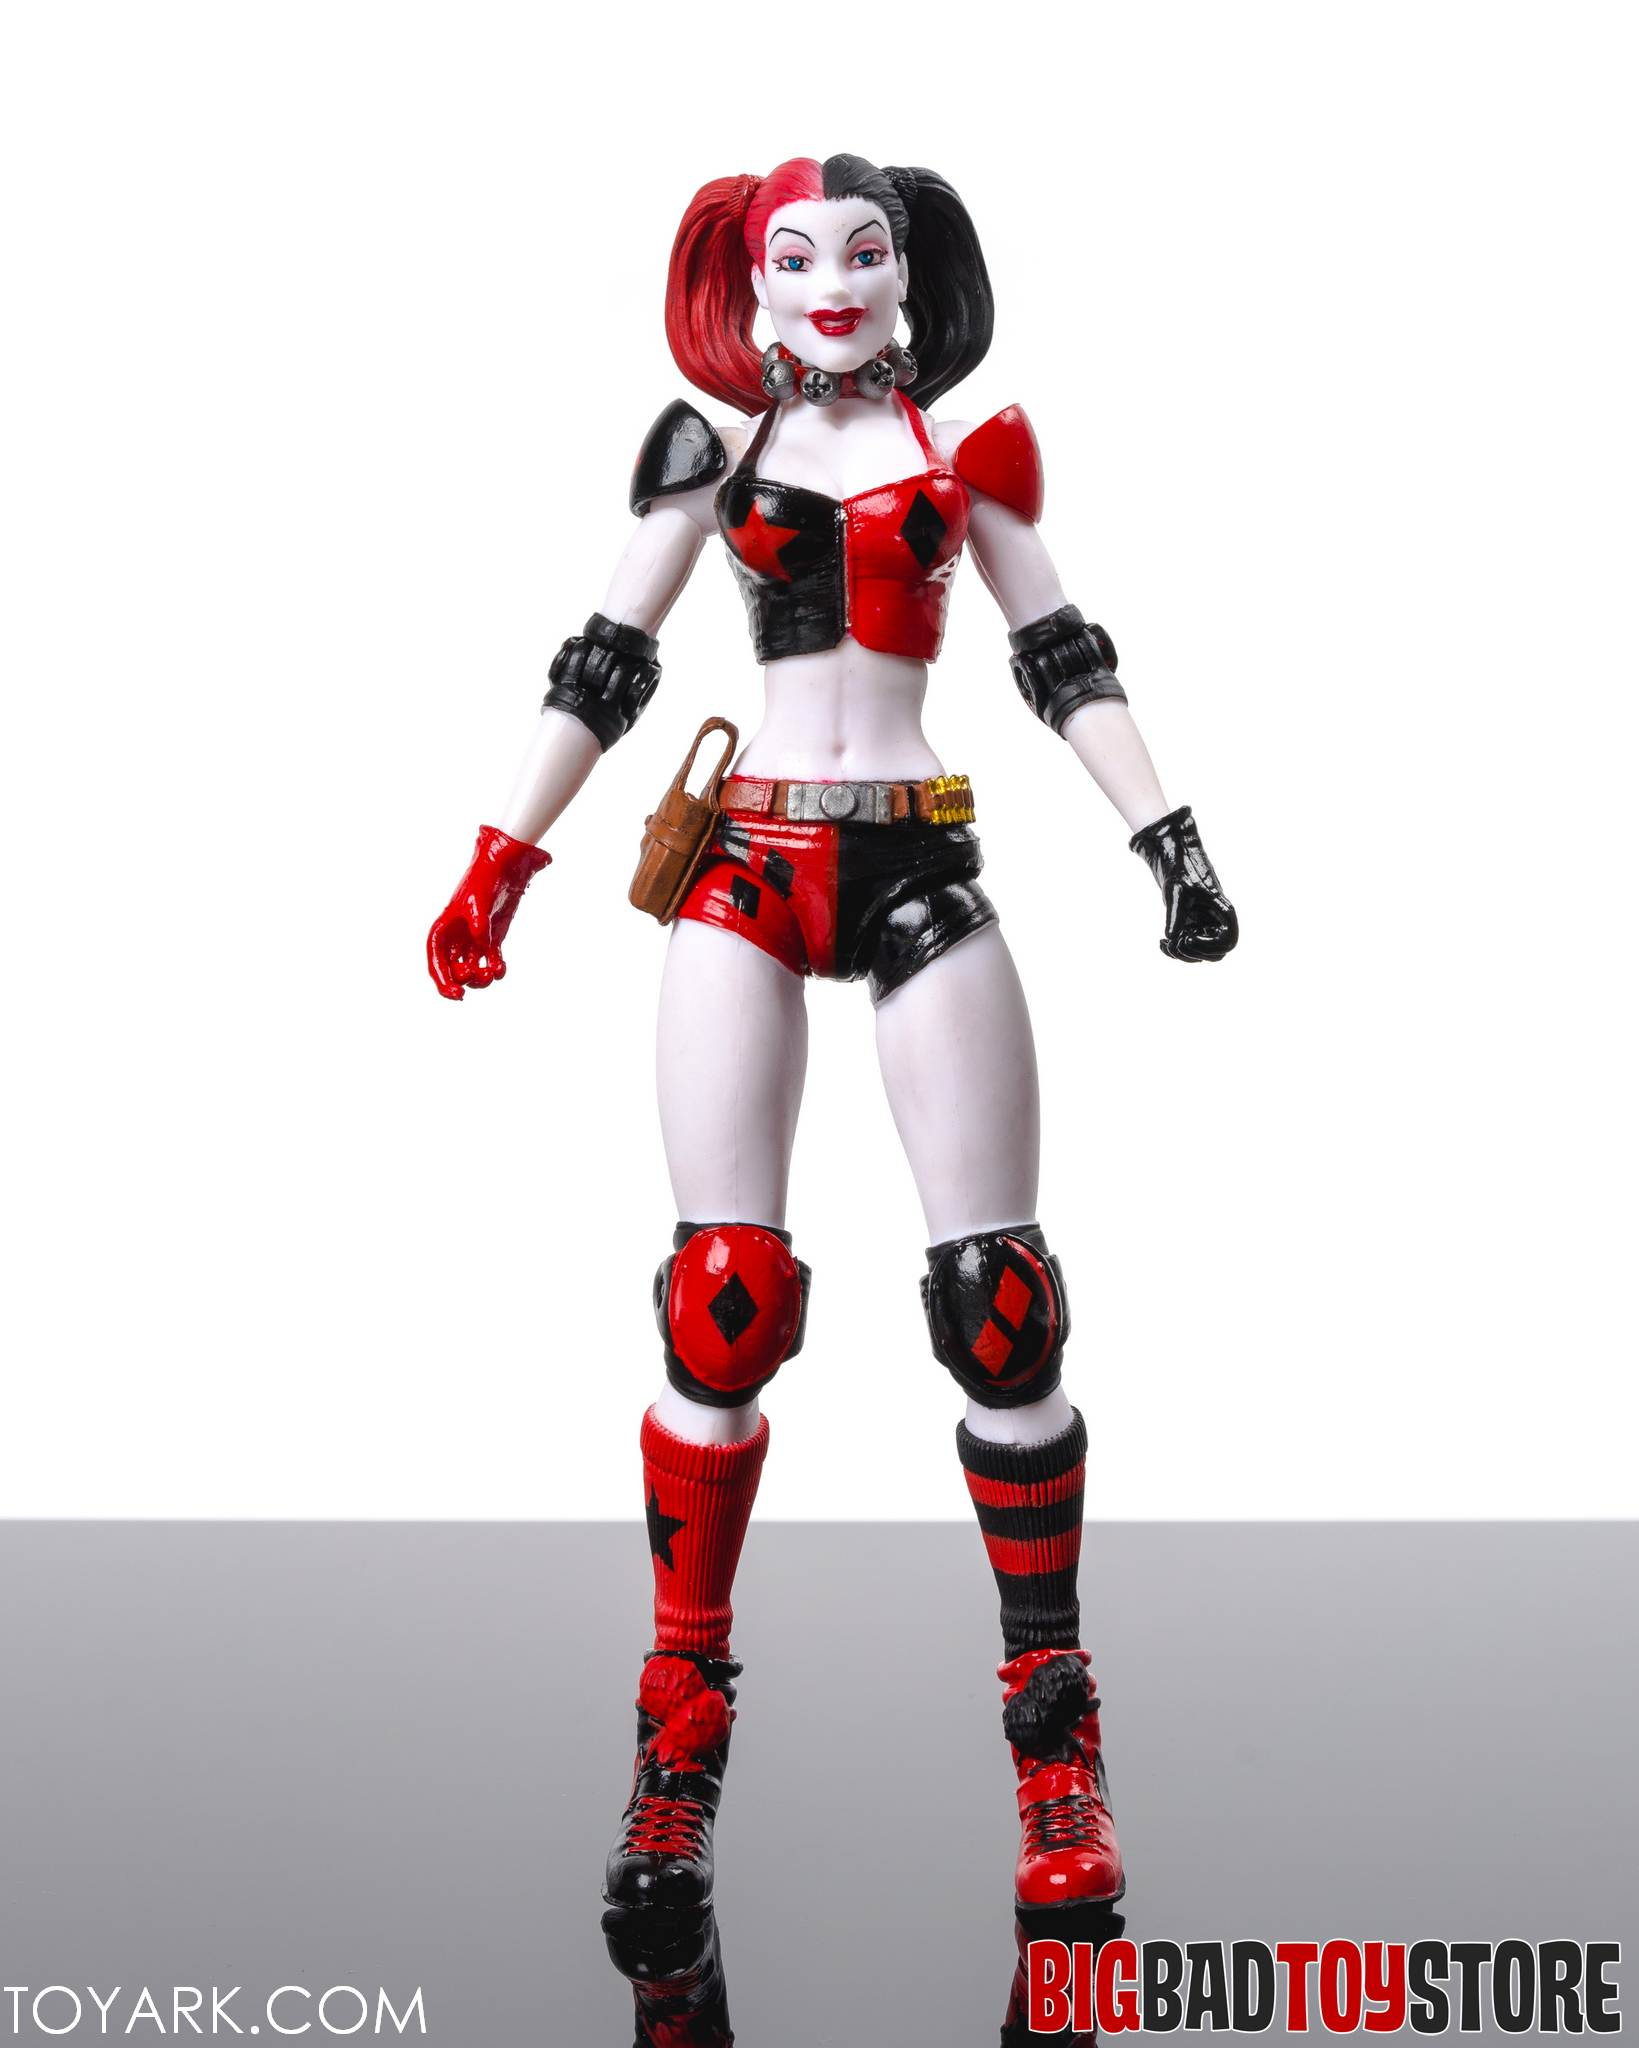 http://news.toyark.com/wp-content/uploads/sites/4/2015/06/DCC-New52-Harley-Quinn-04.jpg